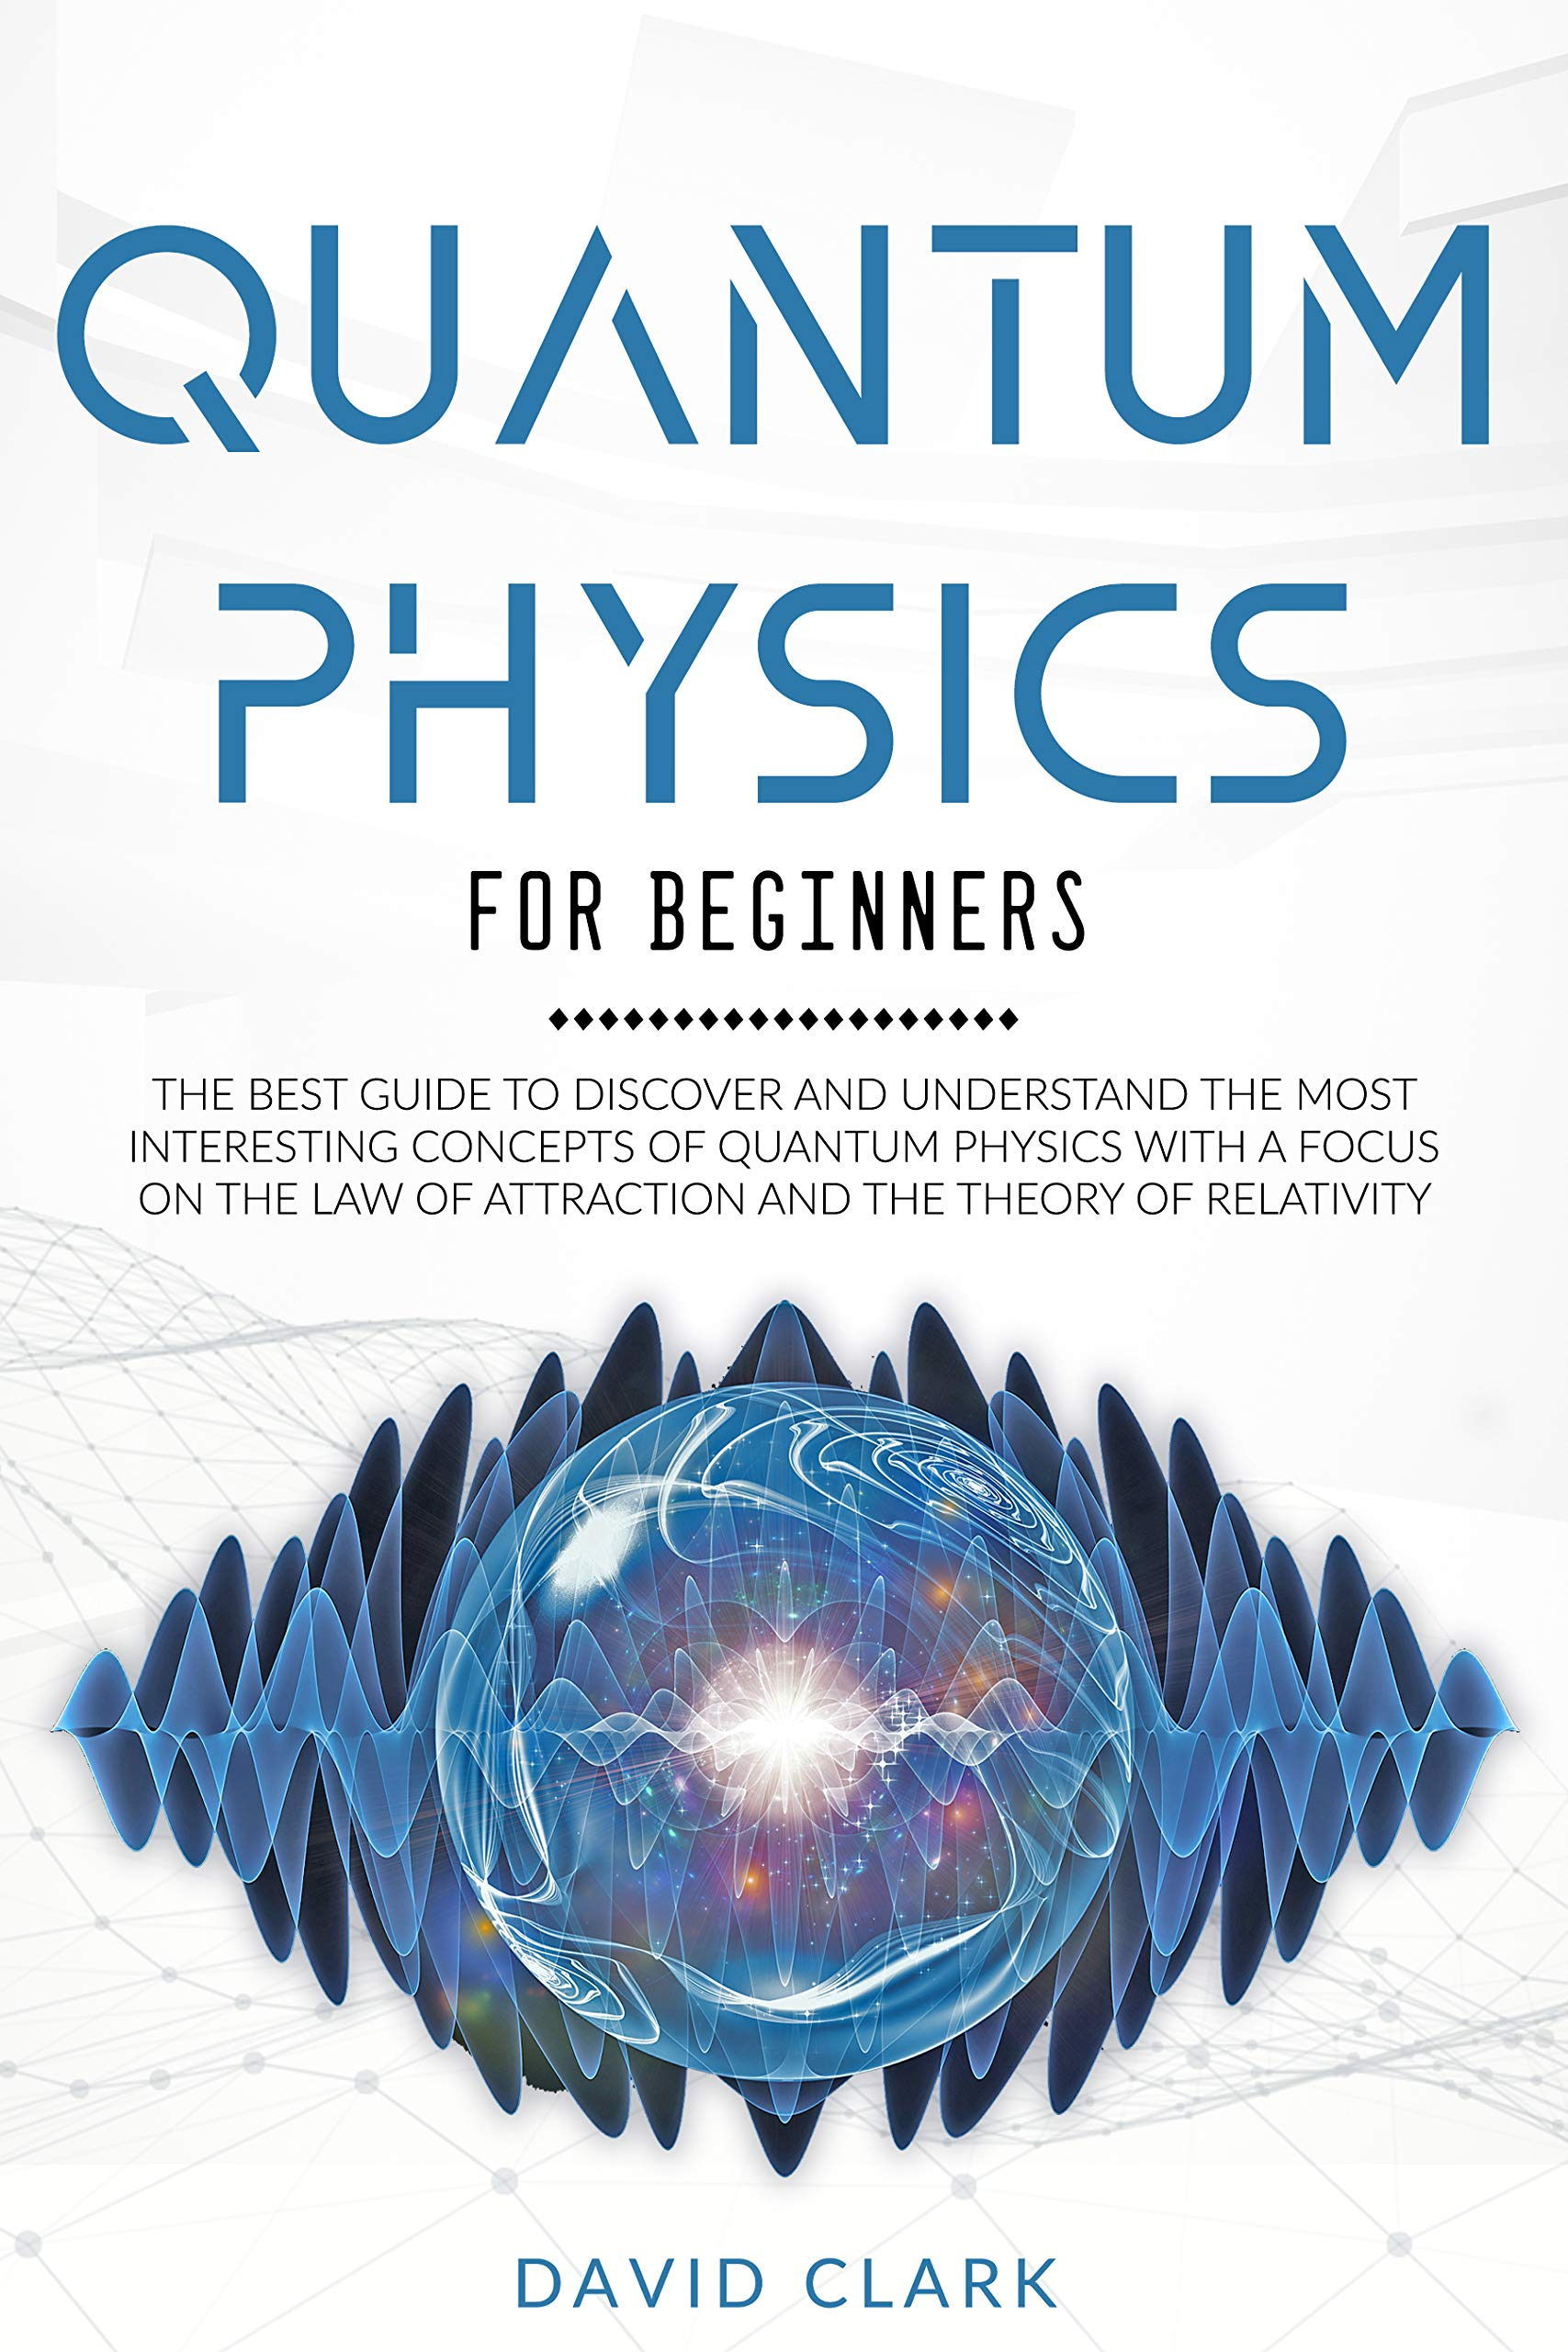 Quantum Physics for Beginners: the Best Guide to Discover and Understand the Most Interesting Concepts of Quantum Physics with a Focus on the Law of Attraction and the Theory of Relativity